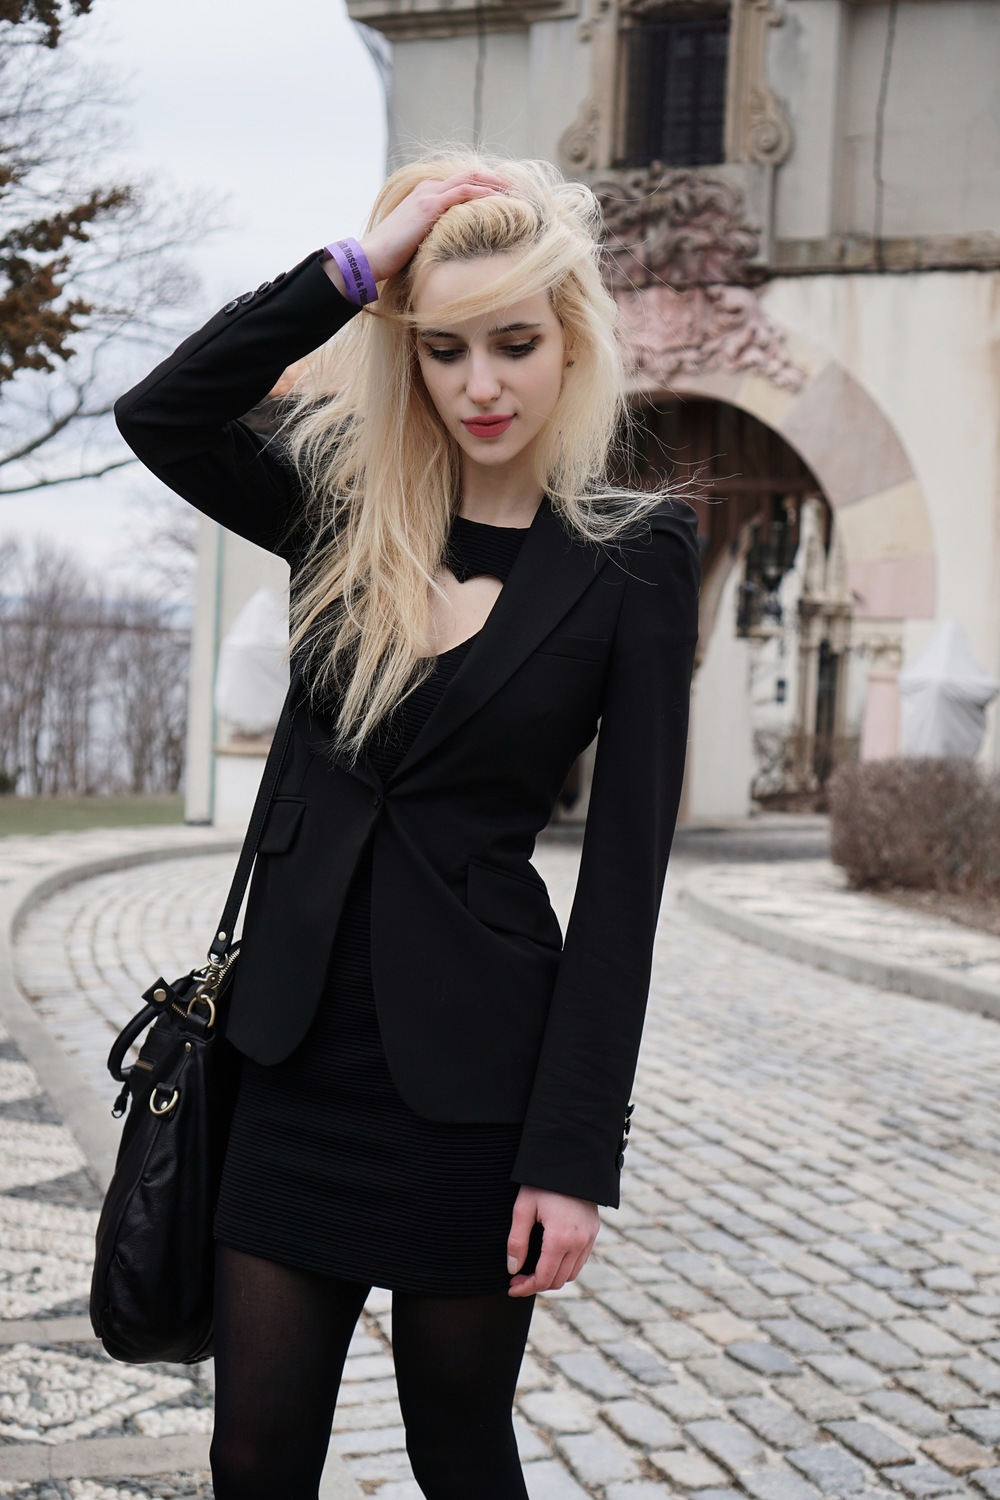 blazer:  zara  | dress:  urban outfitters  | bag:  urban outfitters  | boots:  free people